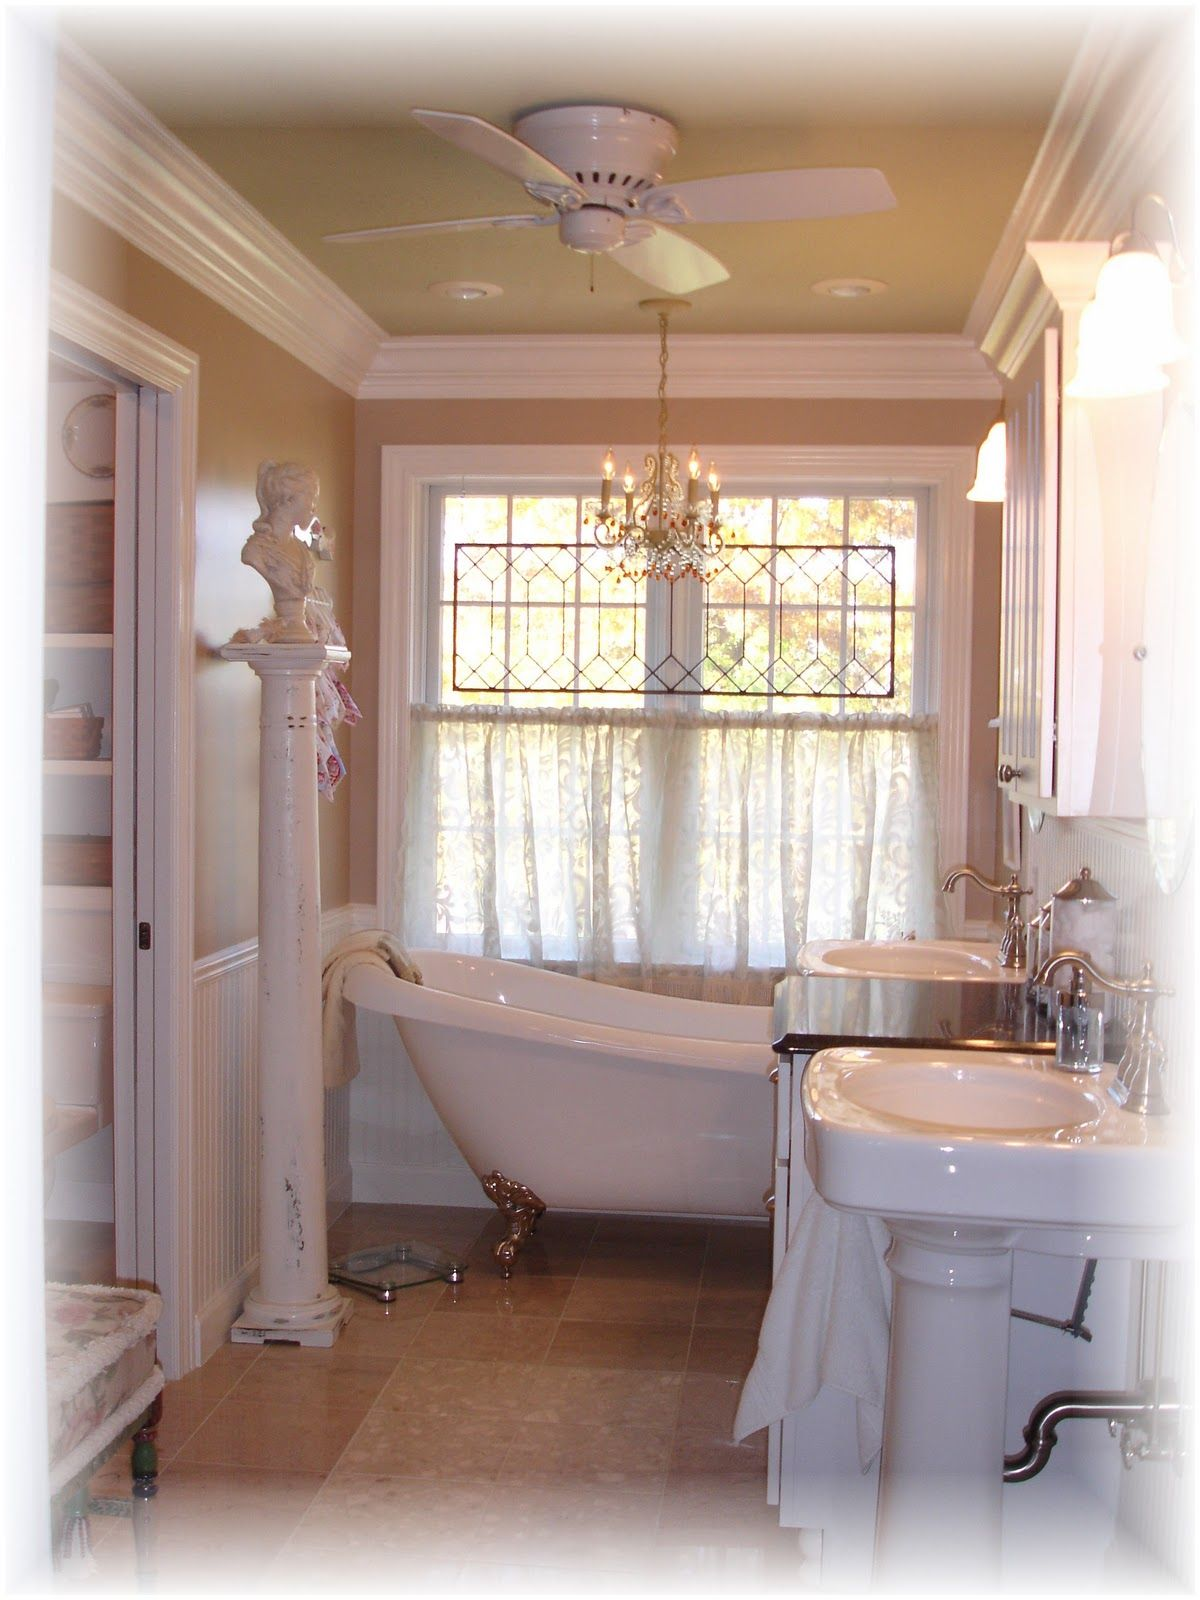 Bathroom idea shower tile bathroom shower bathroom 2 bp blogspot com - My Master Bathroom Two Rooms A Double Sink And Claw Foot Tub Room And A Toilet And Shower Room